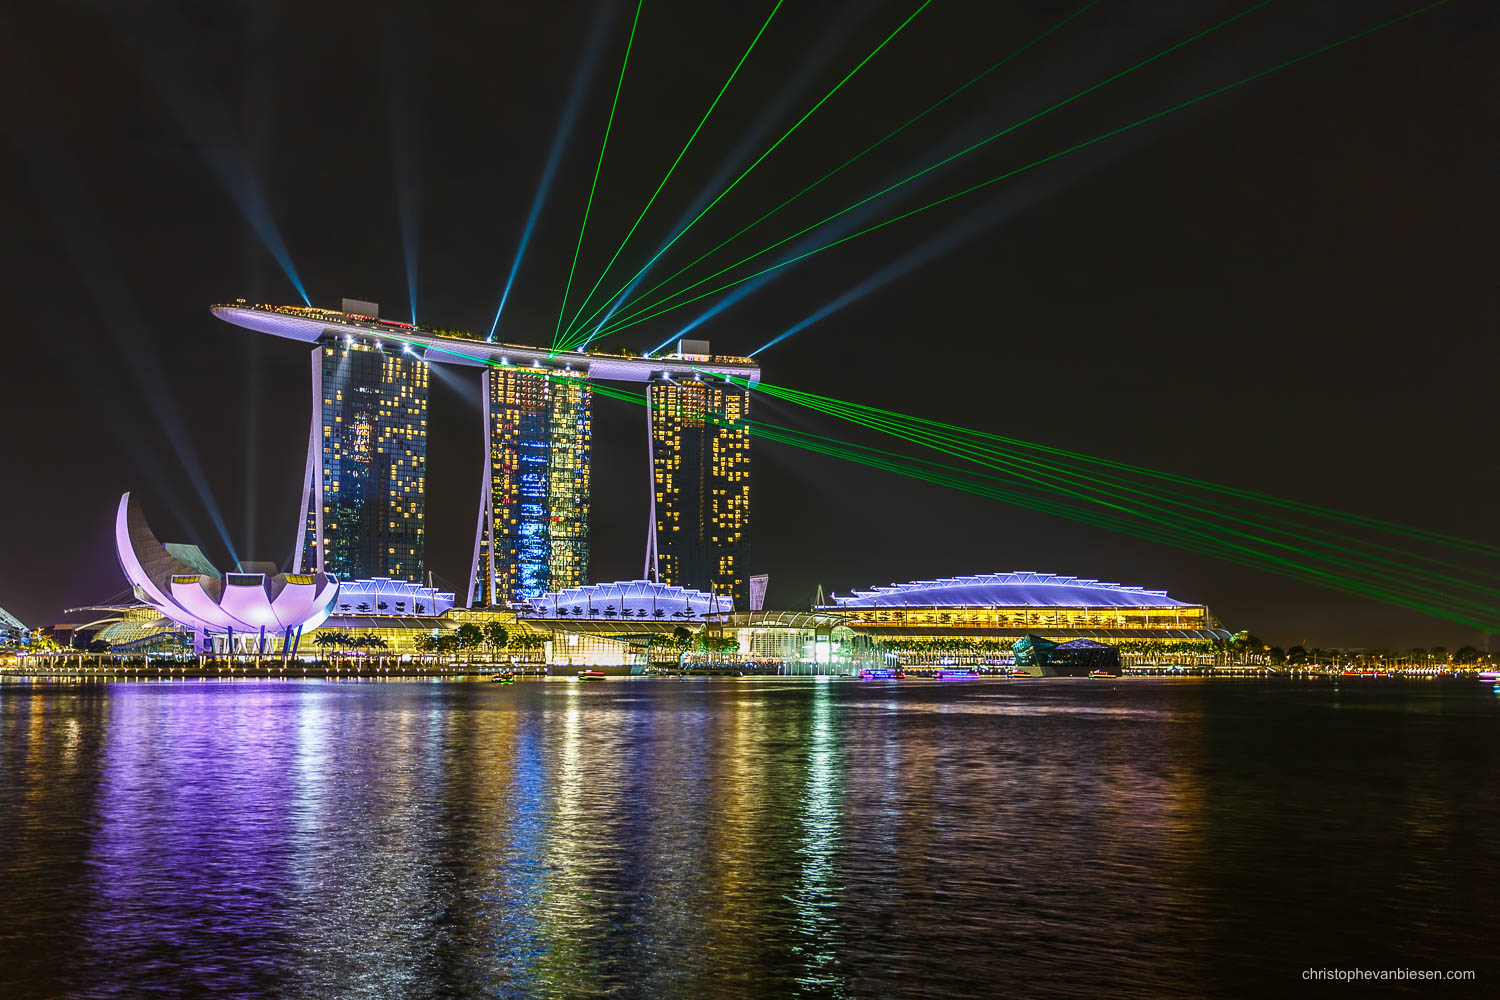 Singapore - The Laser show of the Marina Bay Sands hotel is one of the things one should not miss when visiting Singapore - Laser Game